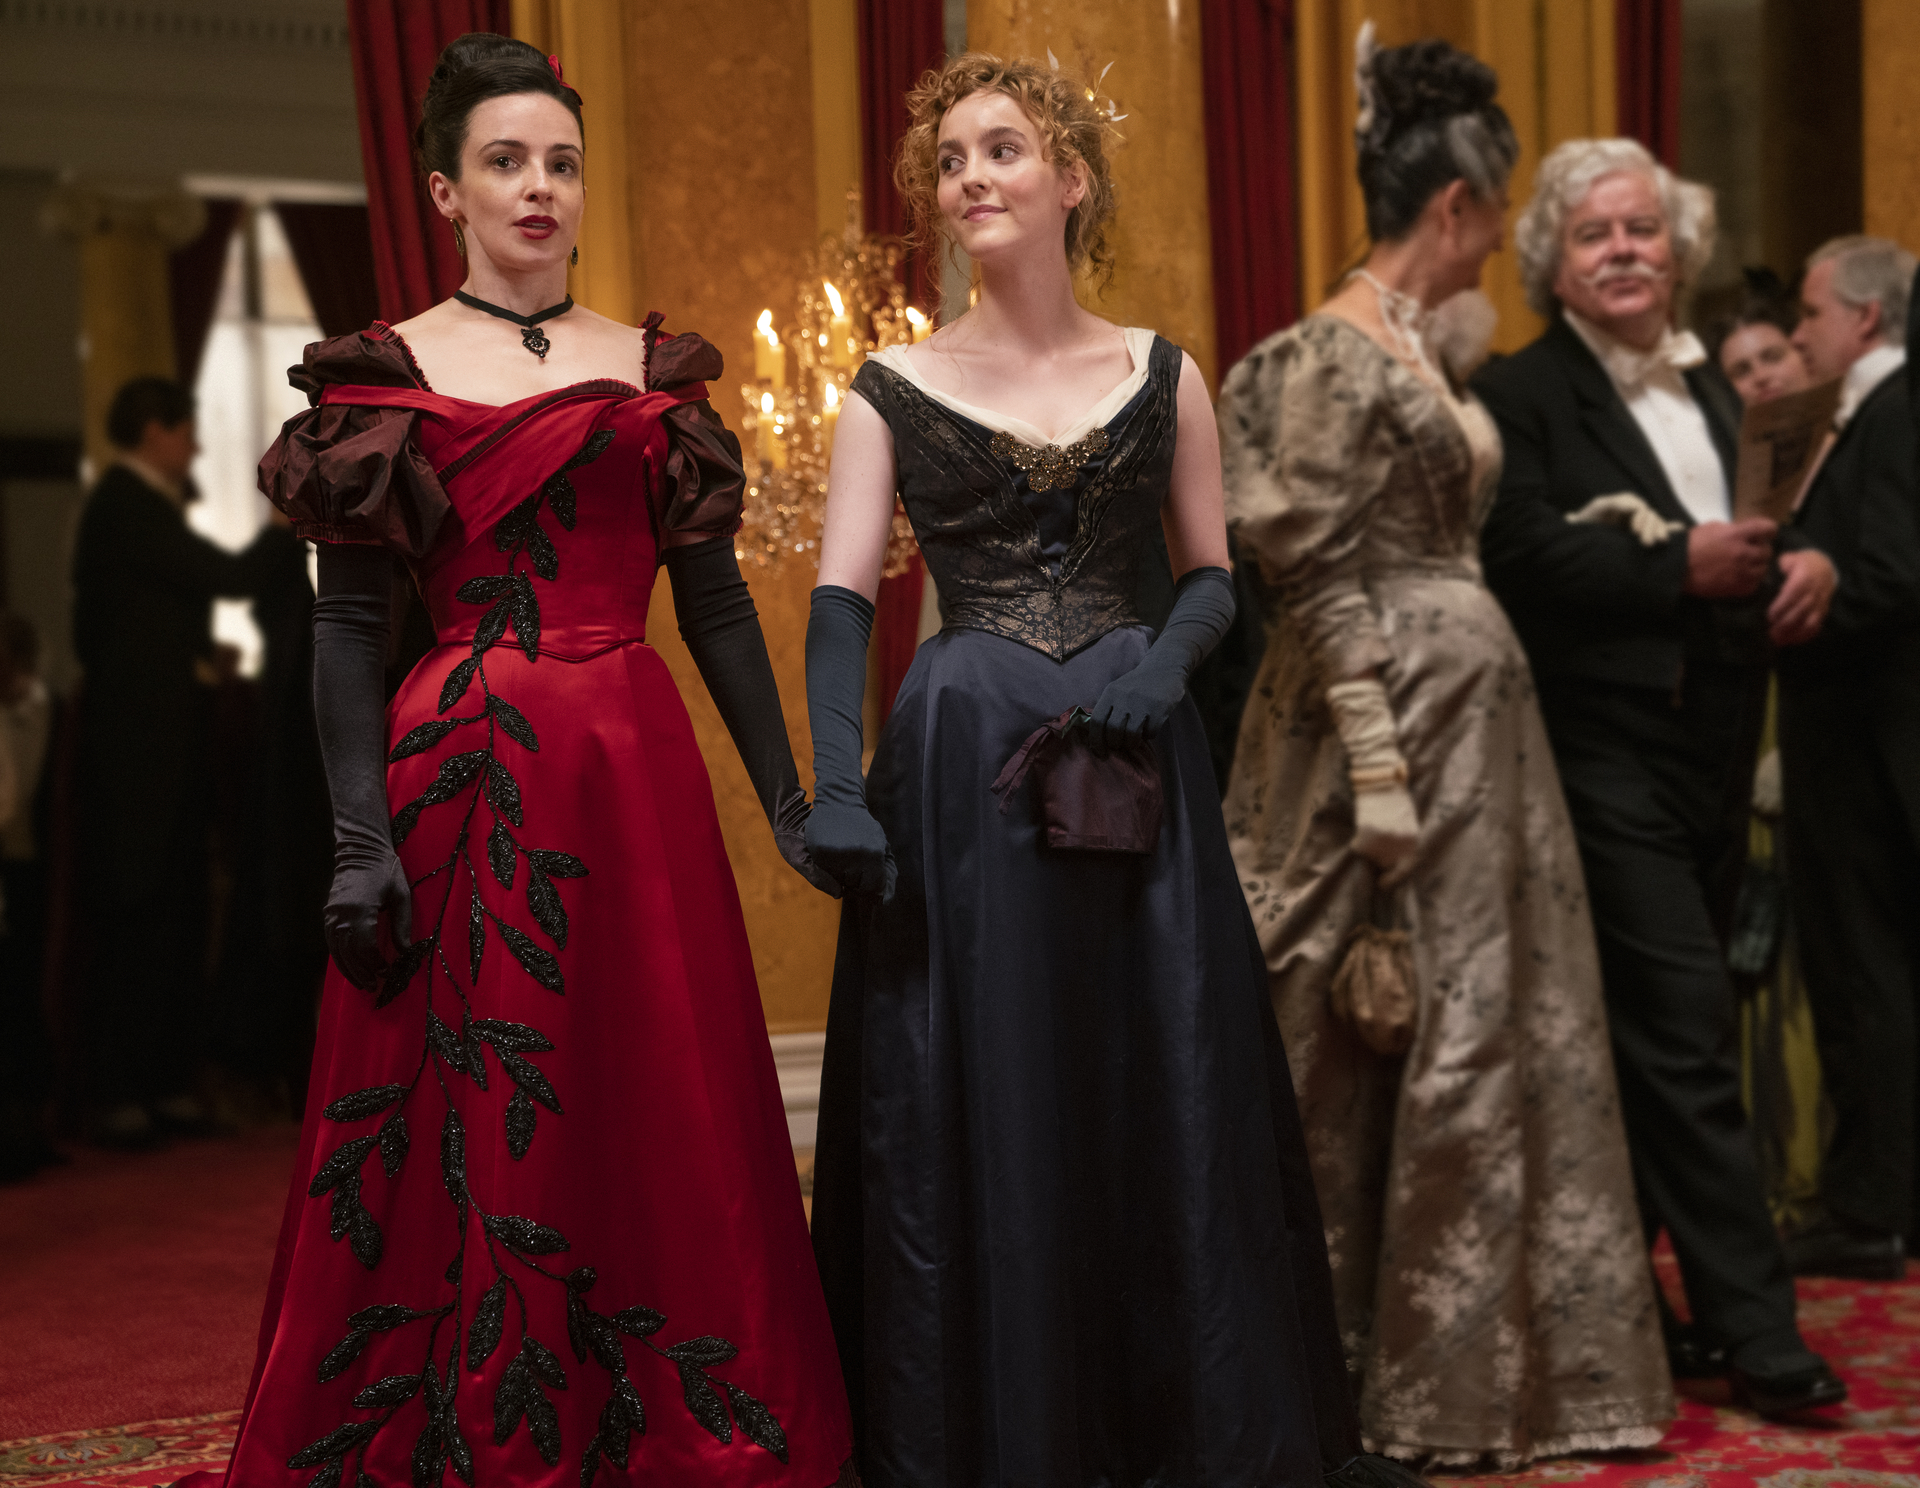 Laura Donnelly wearing a red dress holding hands with Ann Skelly wearing a black dress in The Nevers